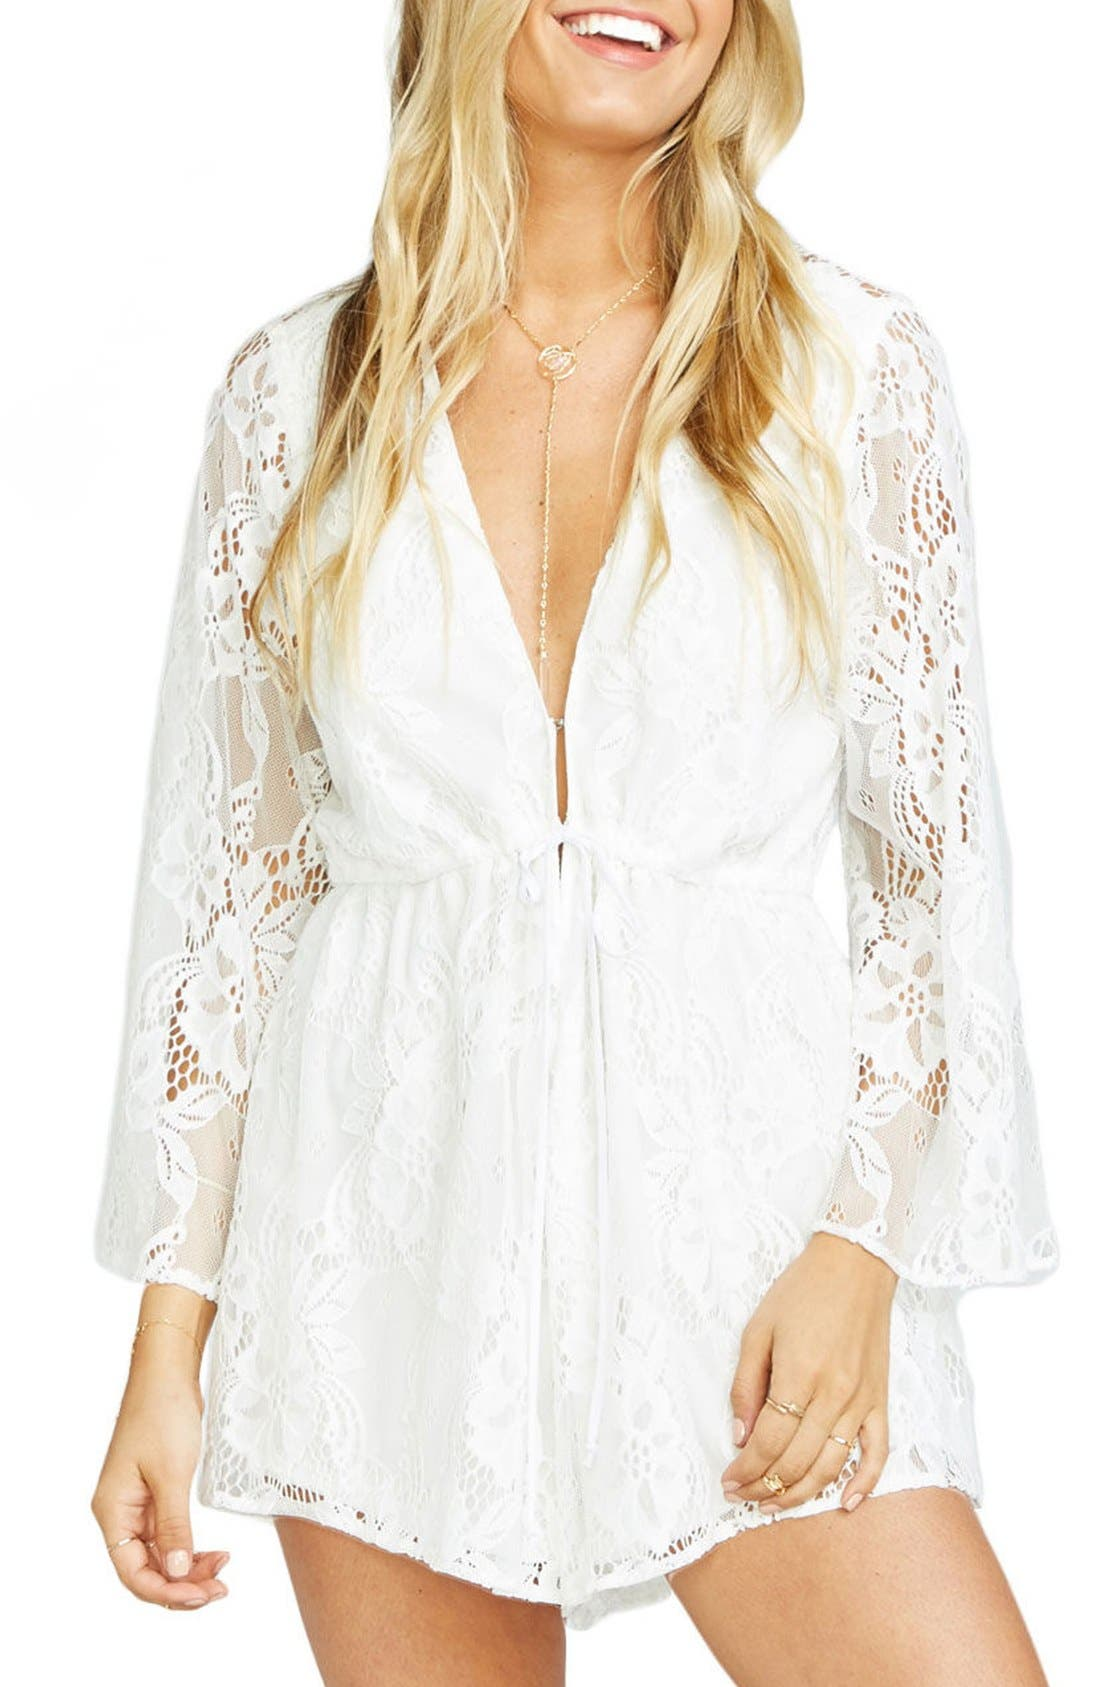 Alternate Image 1 Selected - Show Me Your Mumu Roxy Plunging Tie Waist Romper